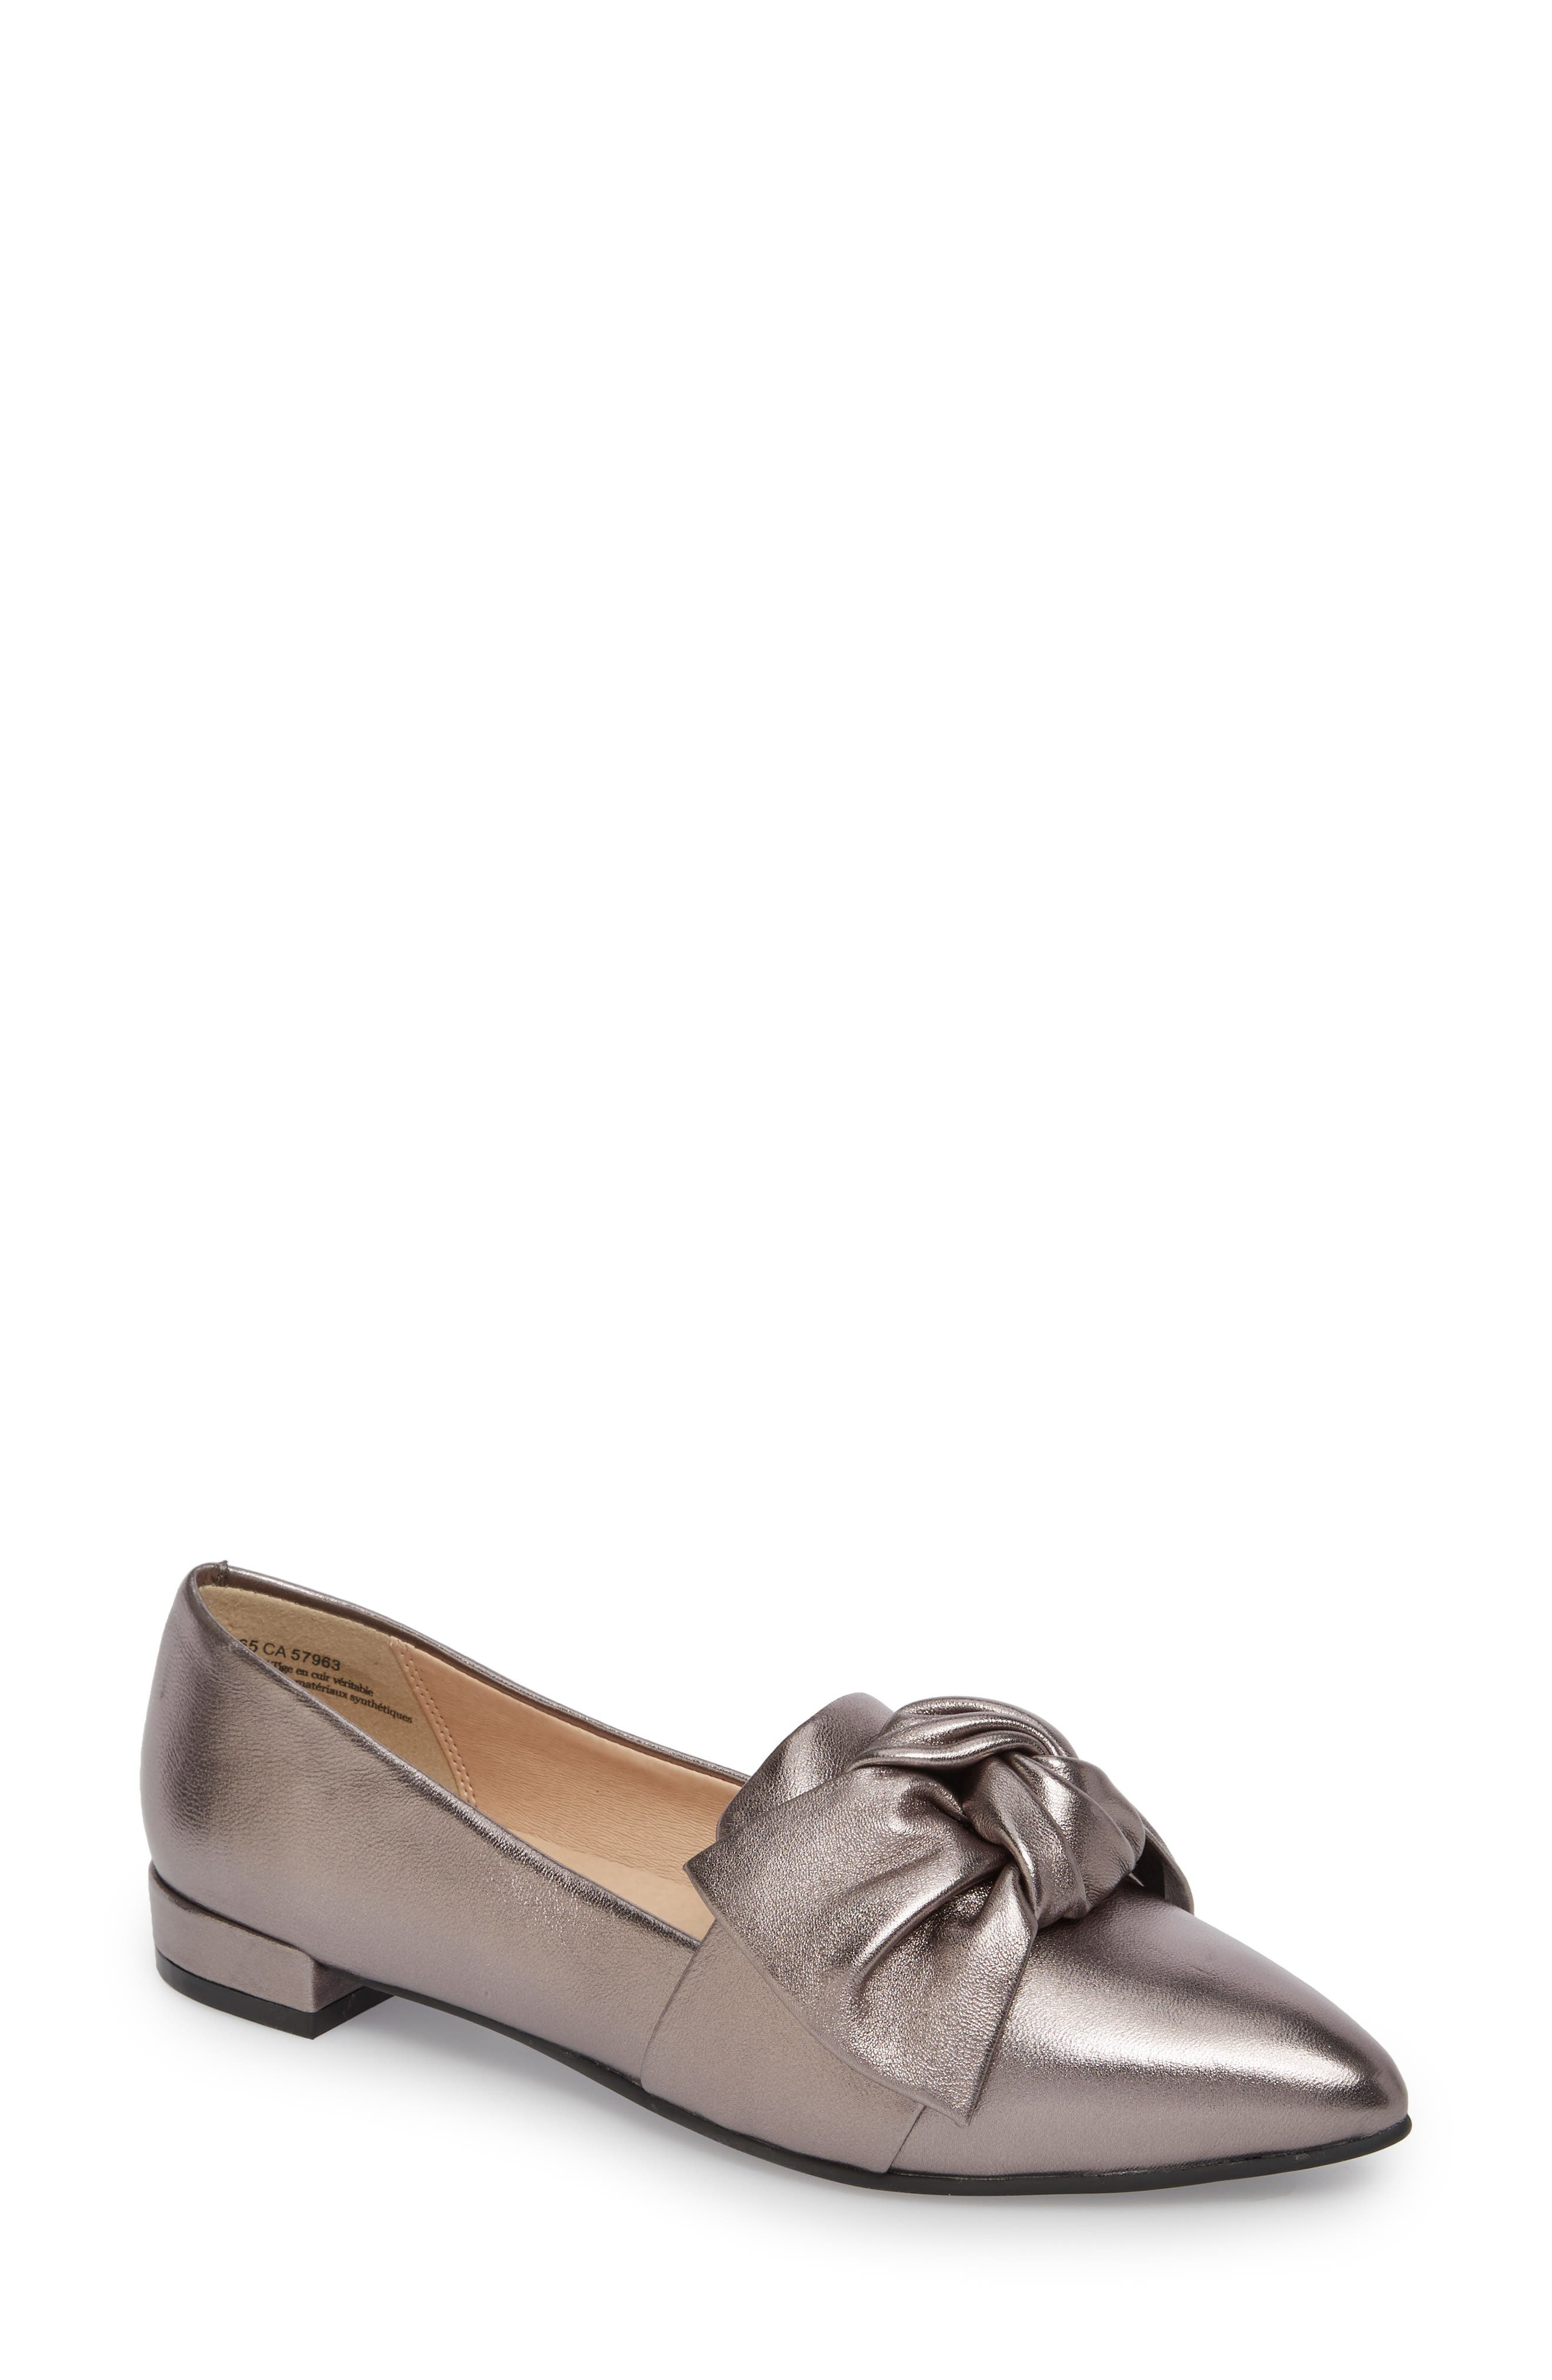 Kari Bow Loafer,                         Main,                         color, Pewter Metallic Leather